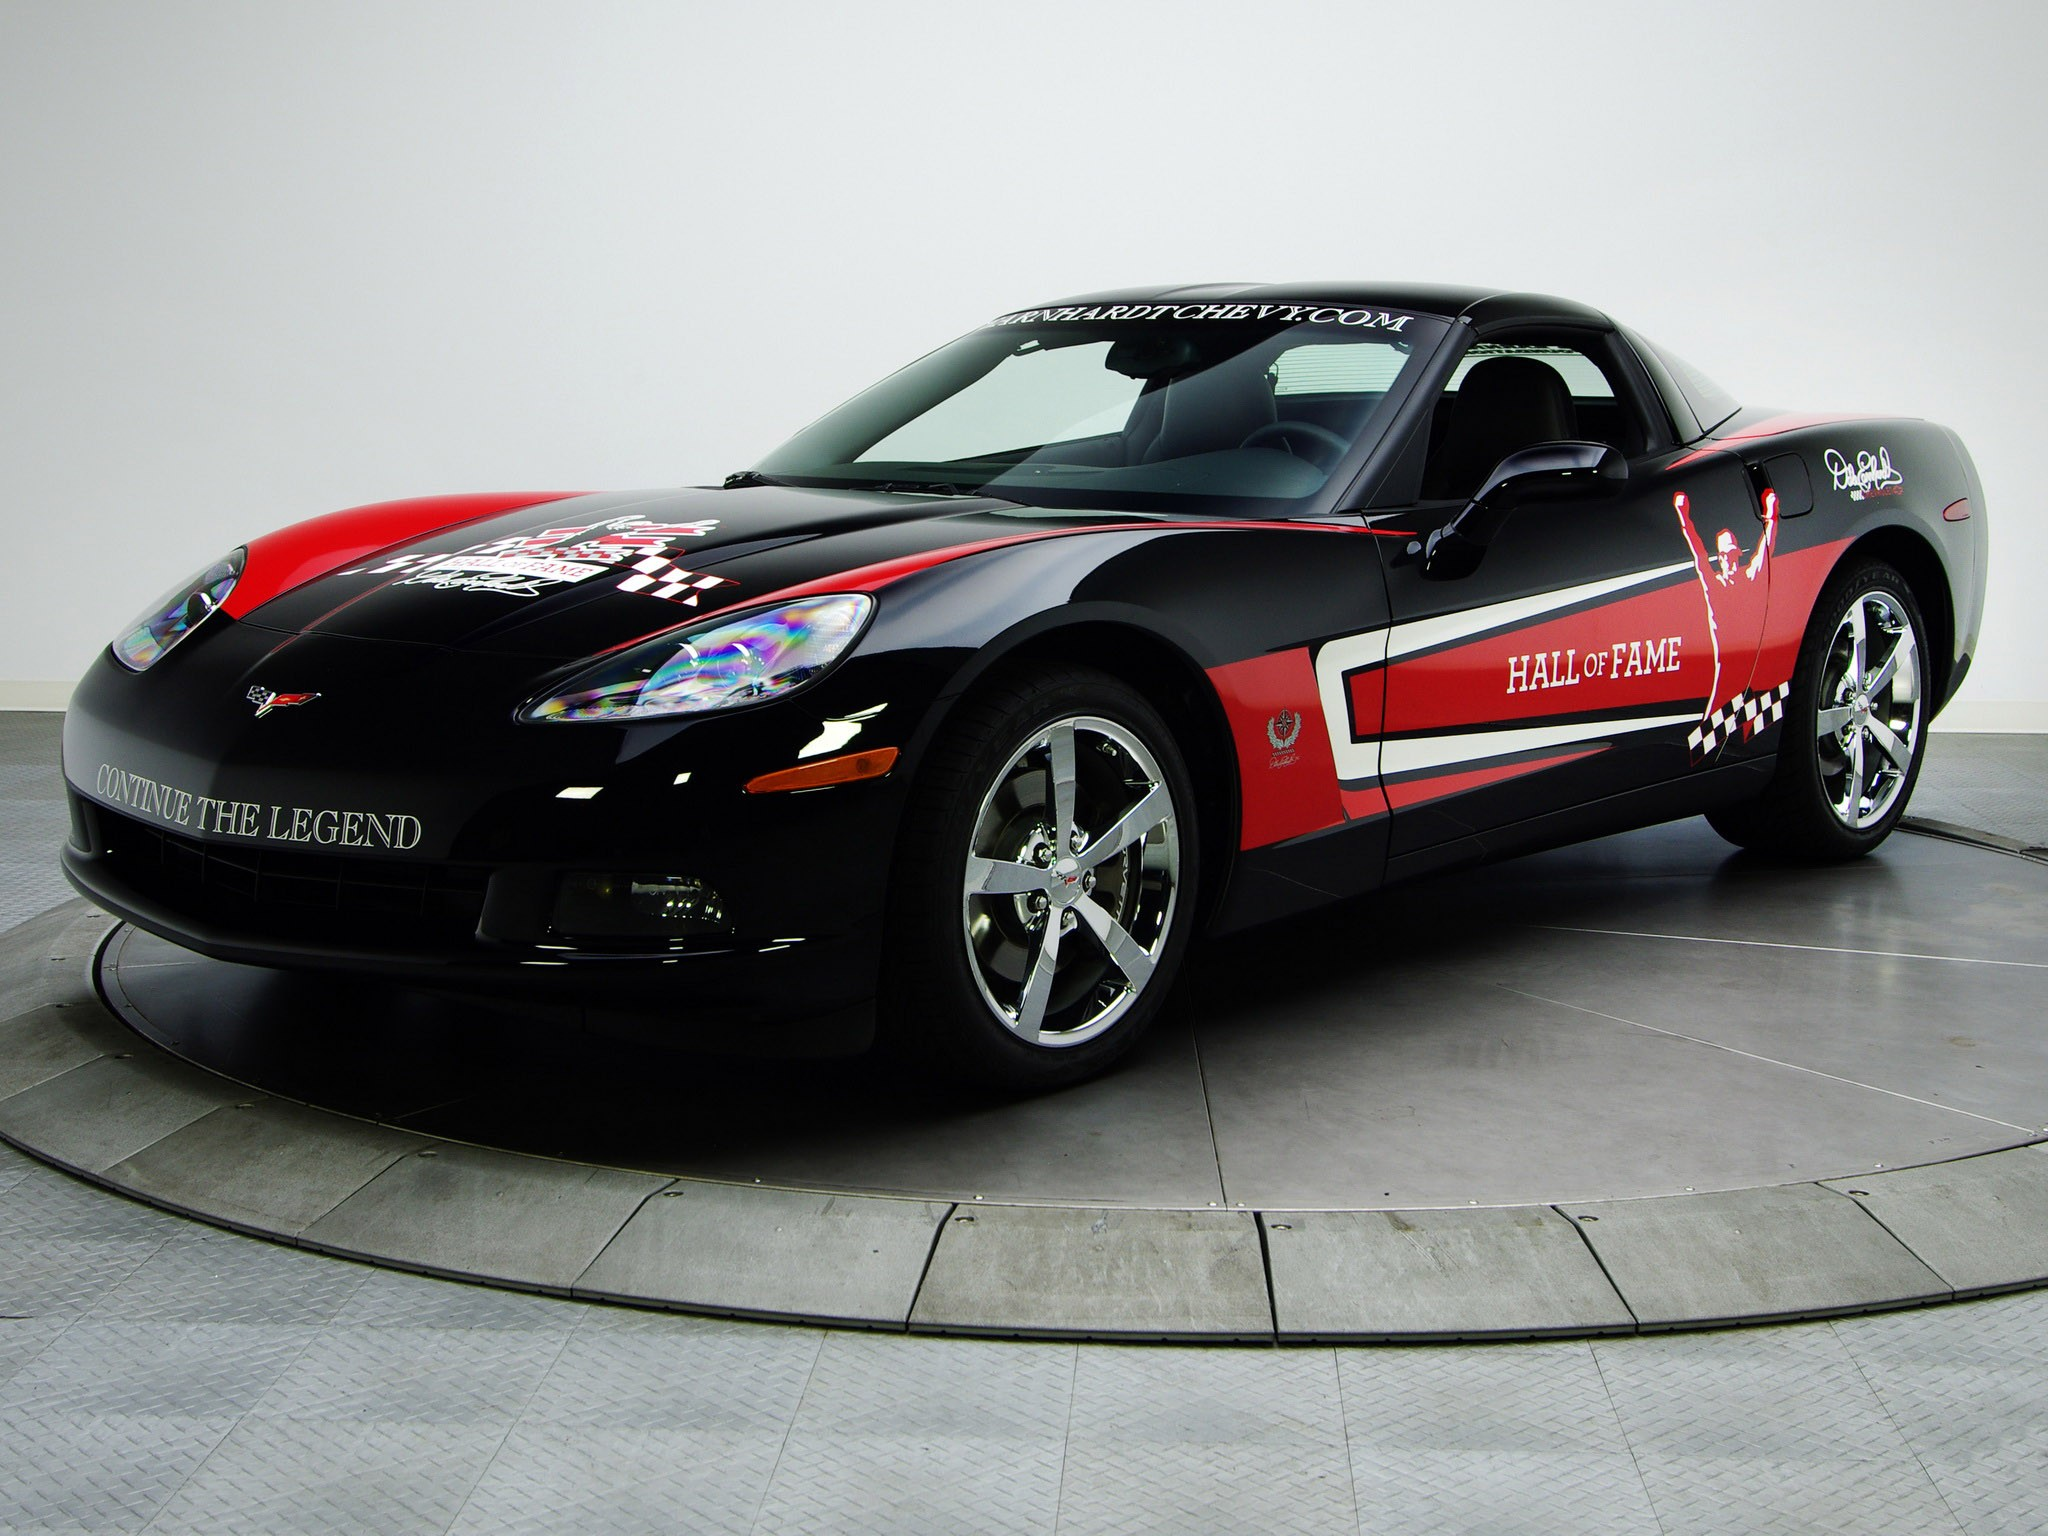 2010 Chevrolet Corvette Coupe Earnhardt